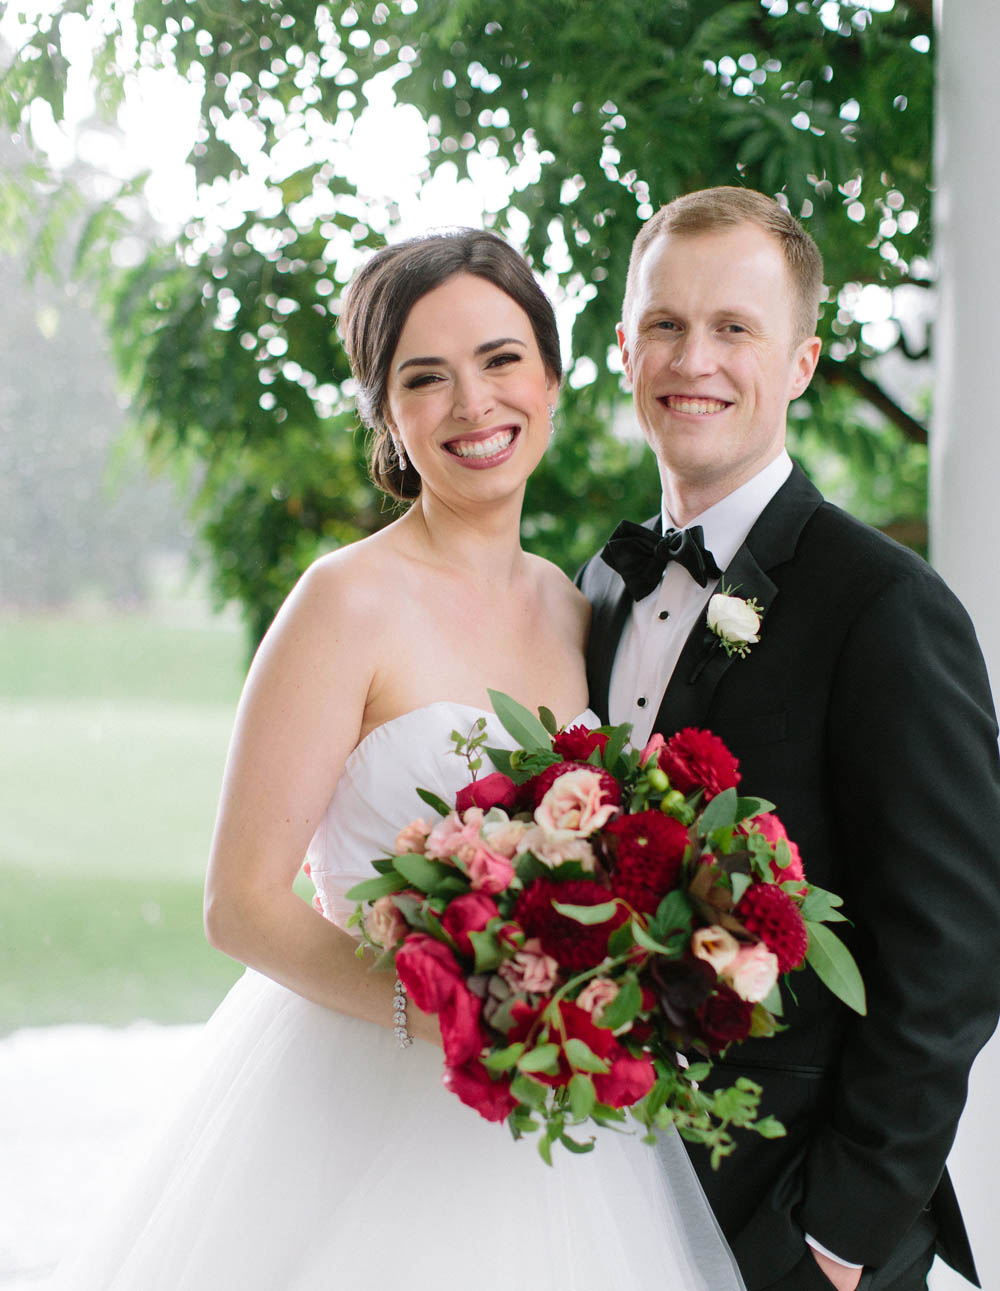 floral design at the Waverley Country Club wedding bouquet